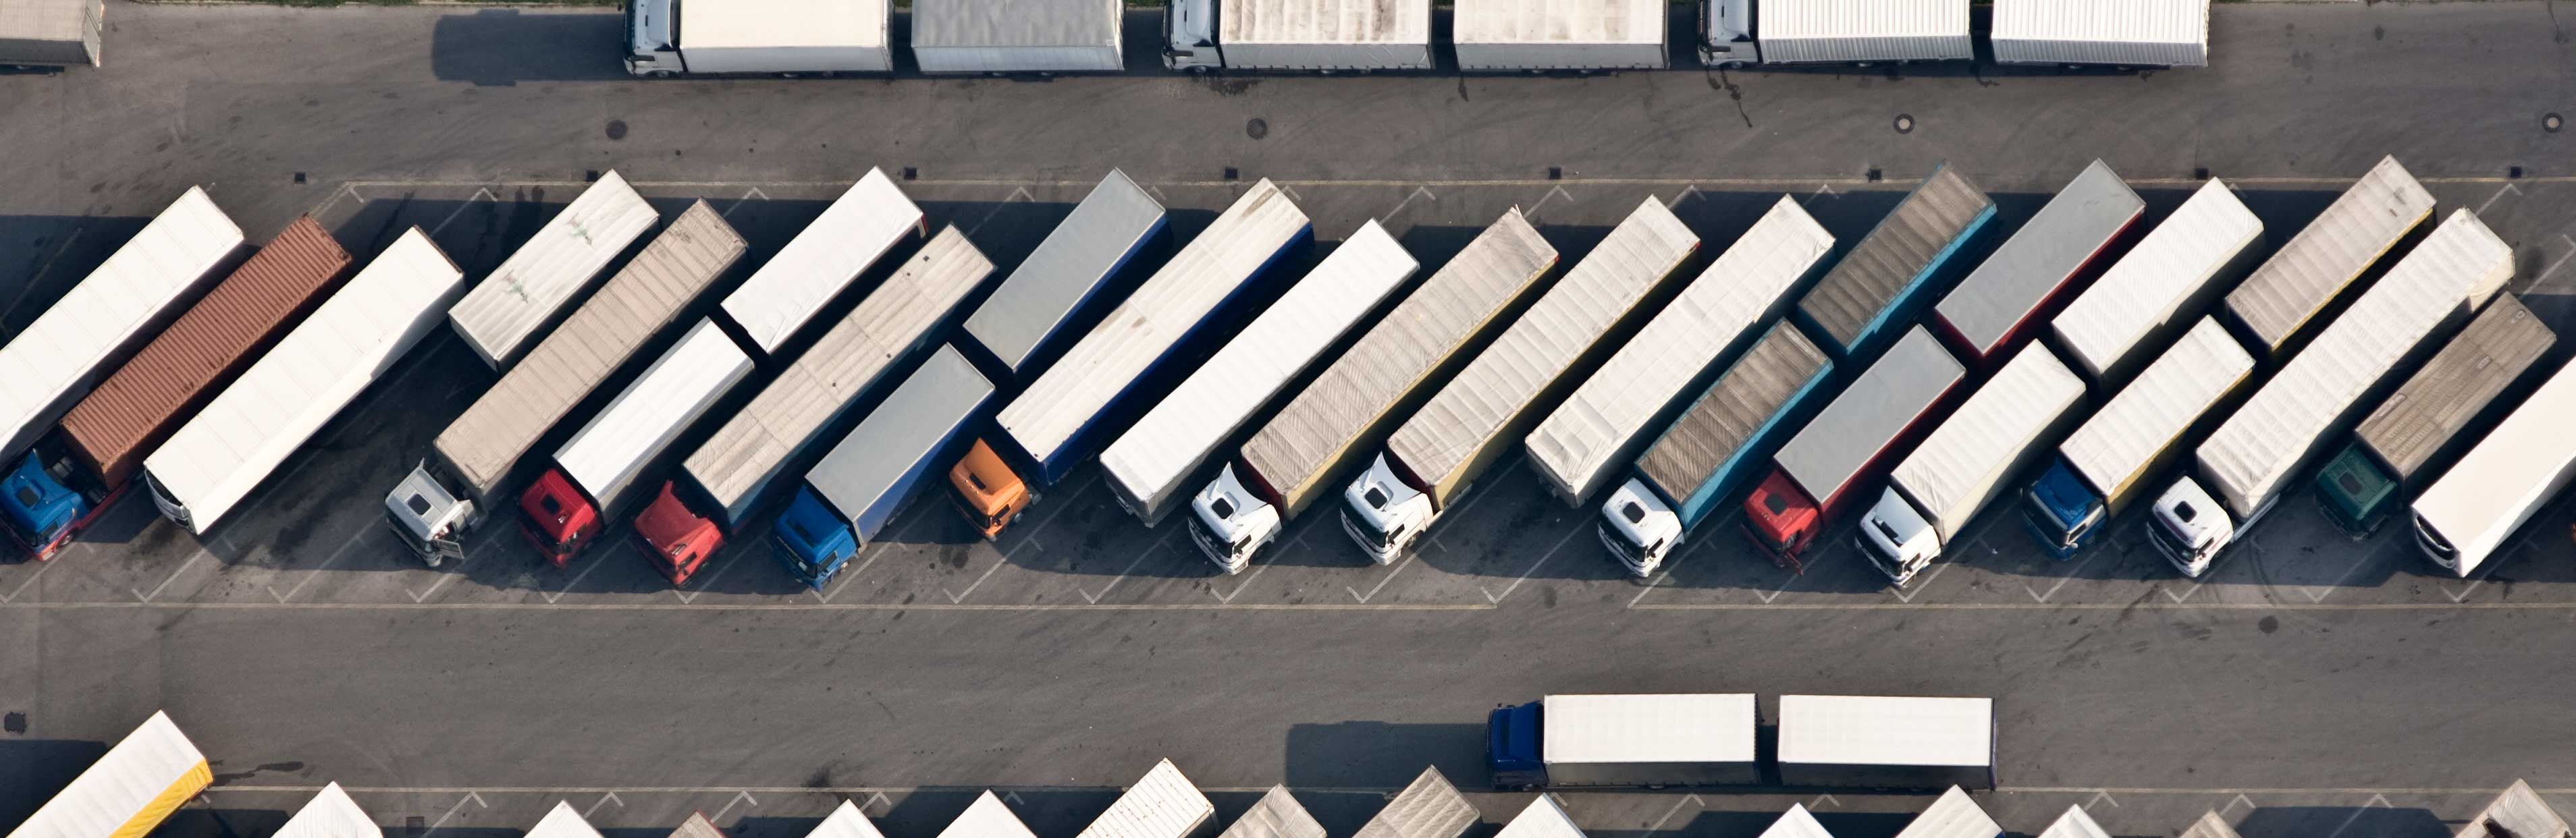 Lorry depot from above